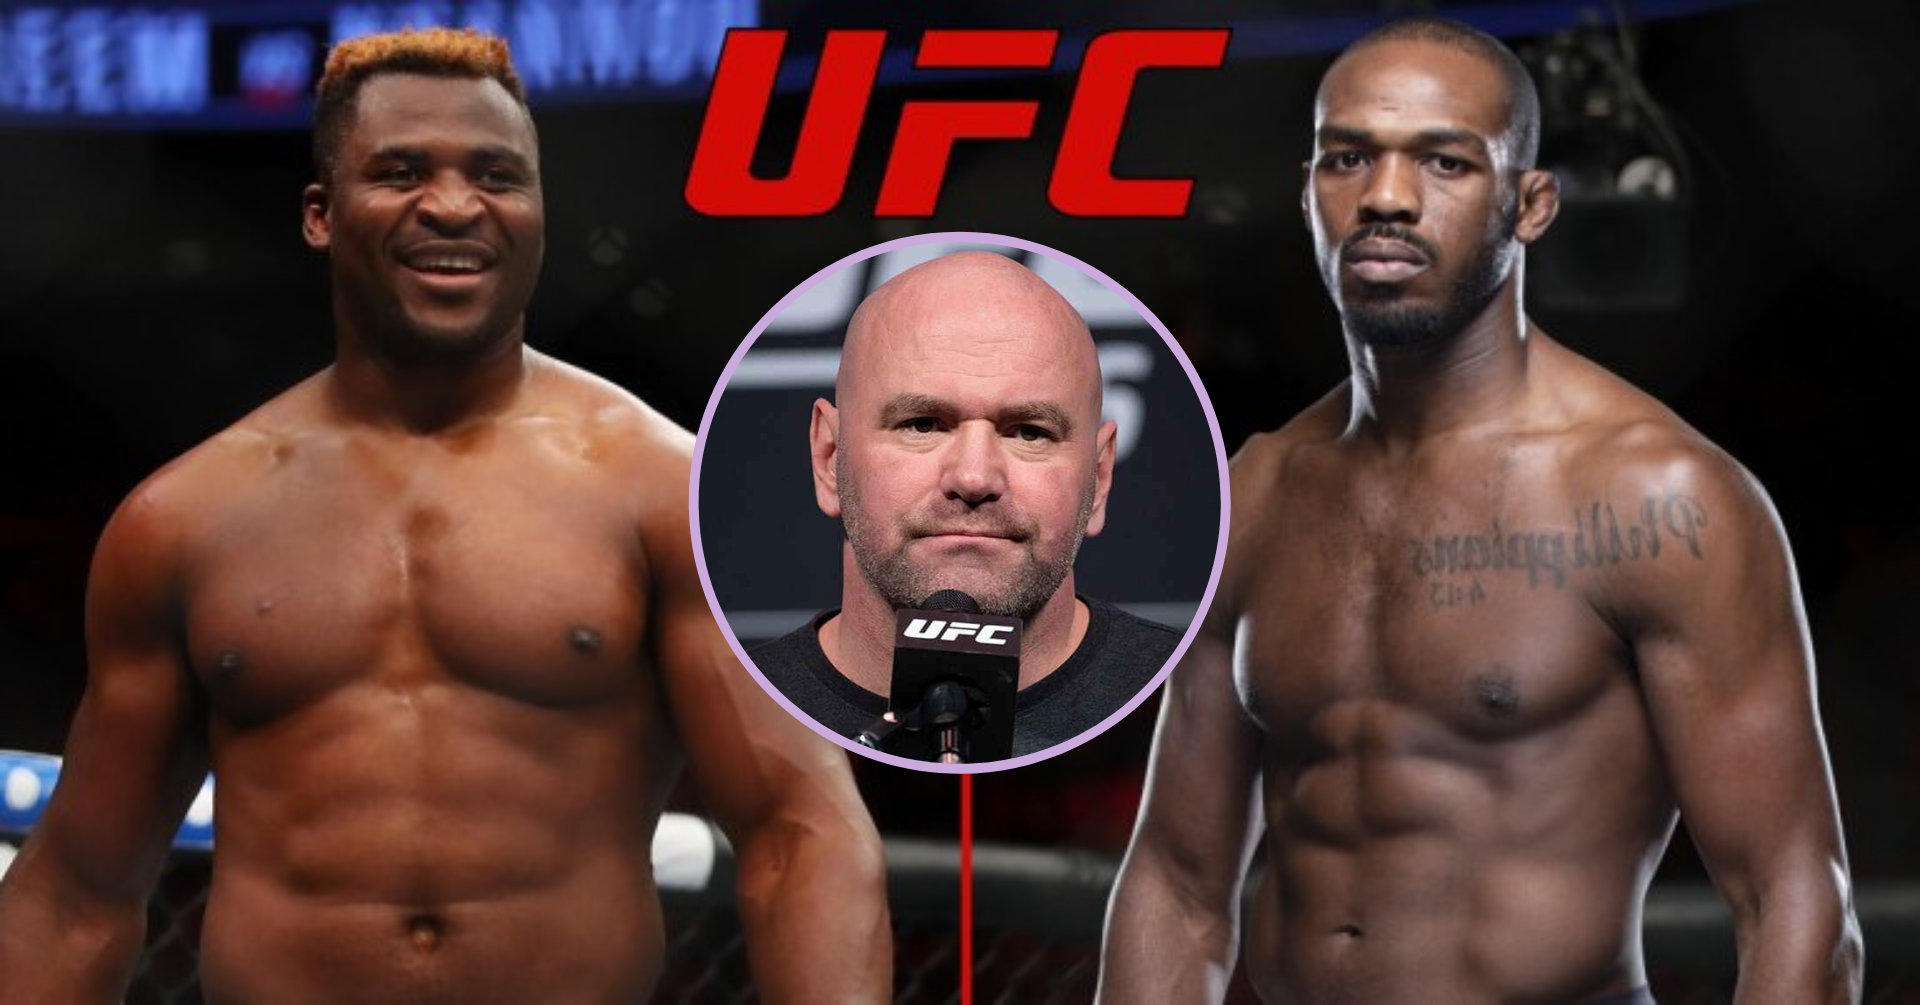 Jon Jones rubbishes Dana White comments that he asked 'too much money' for Ngannou fight - Jon Jones